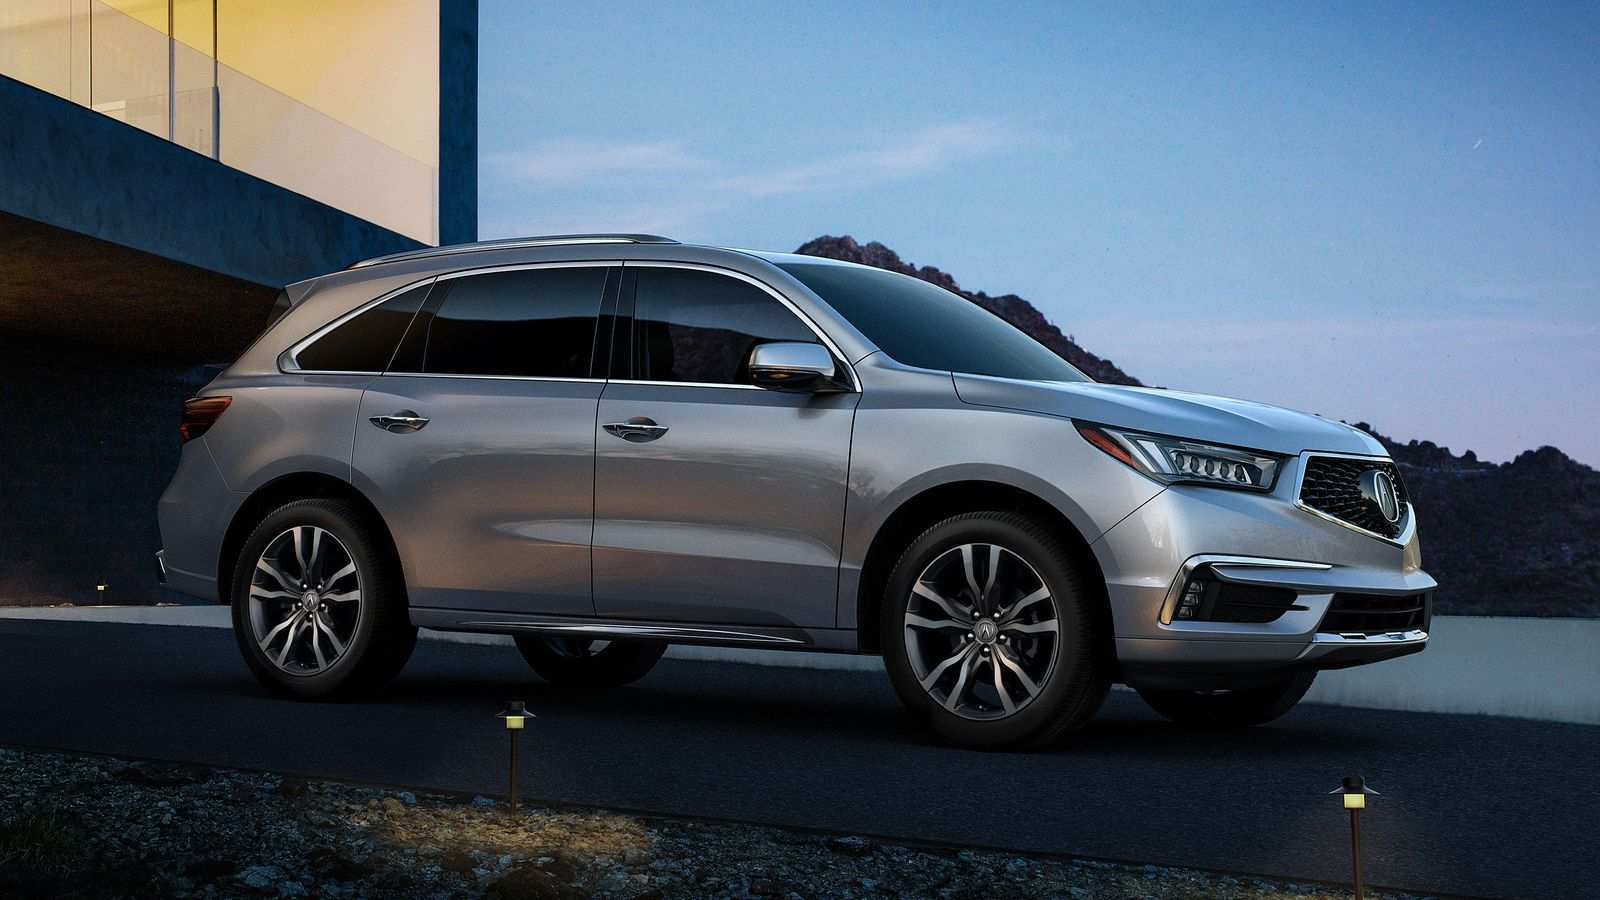 45 All New New Acura Mdx 2019 Updates First Drive Configurations with New Acura Mdx 2019 Updates First Drive